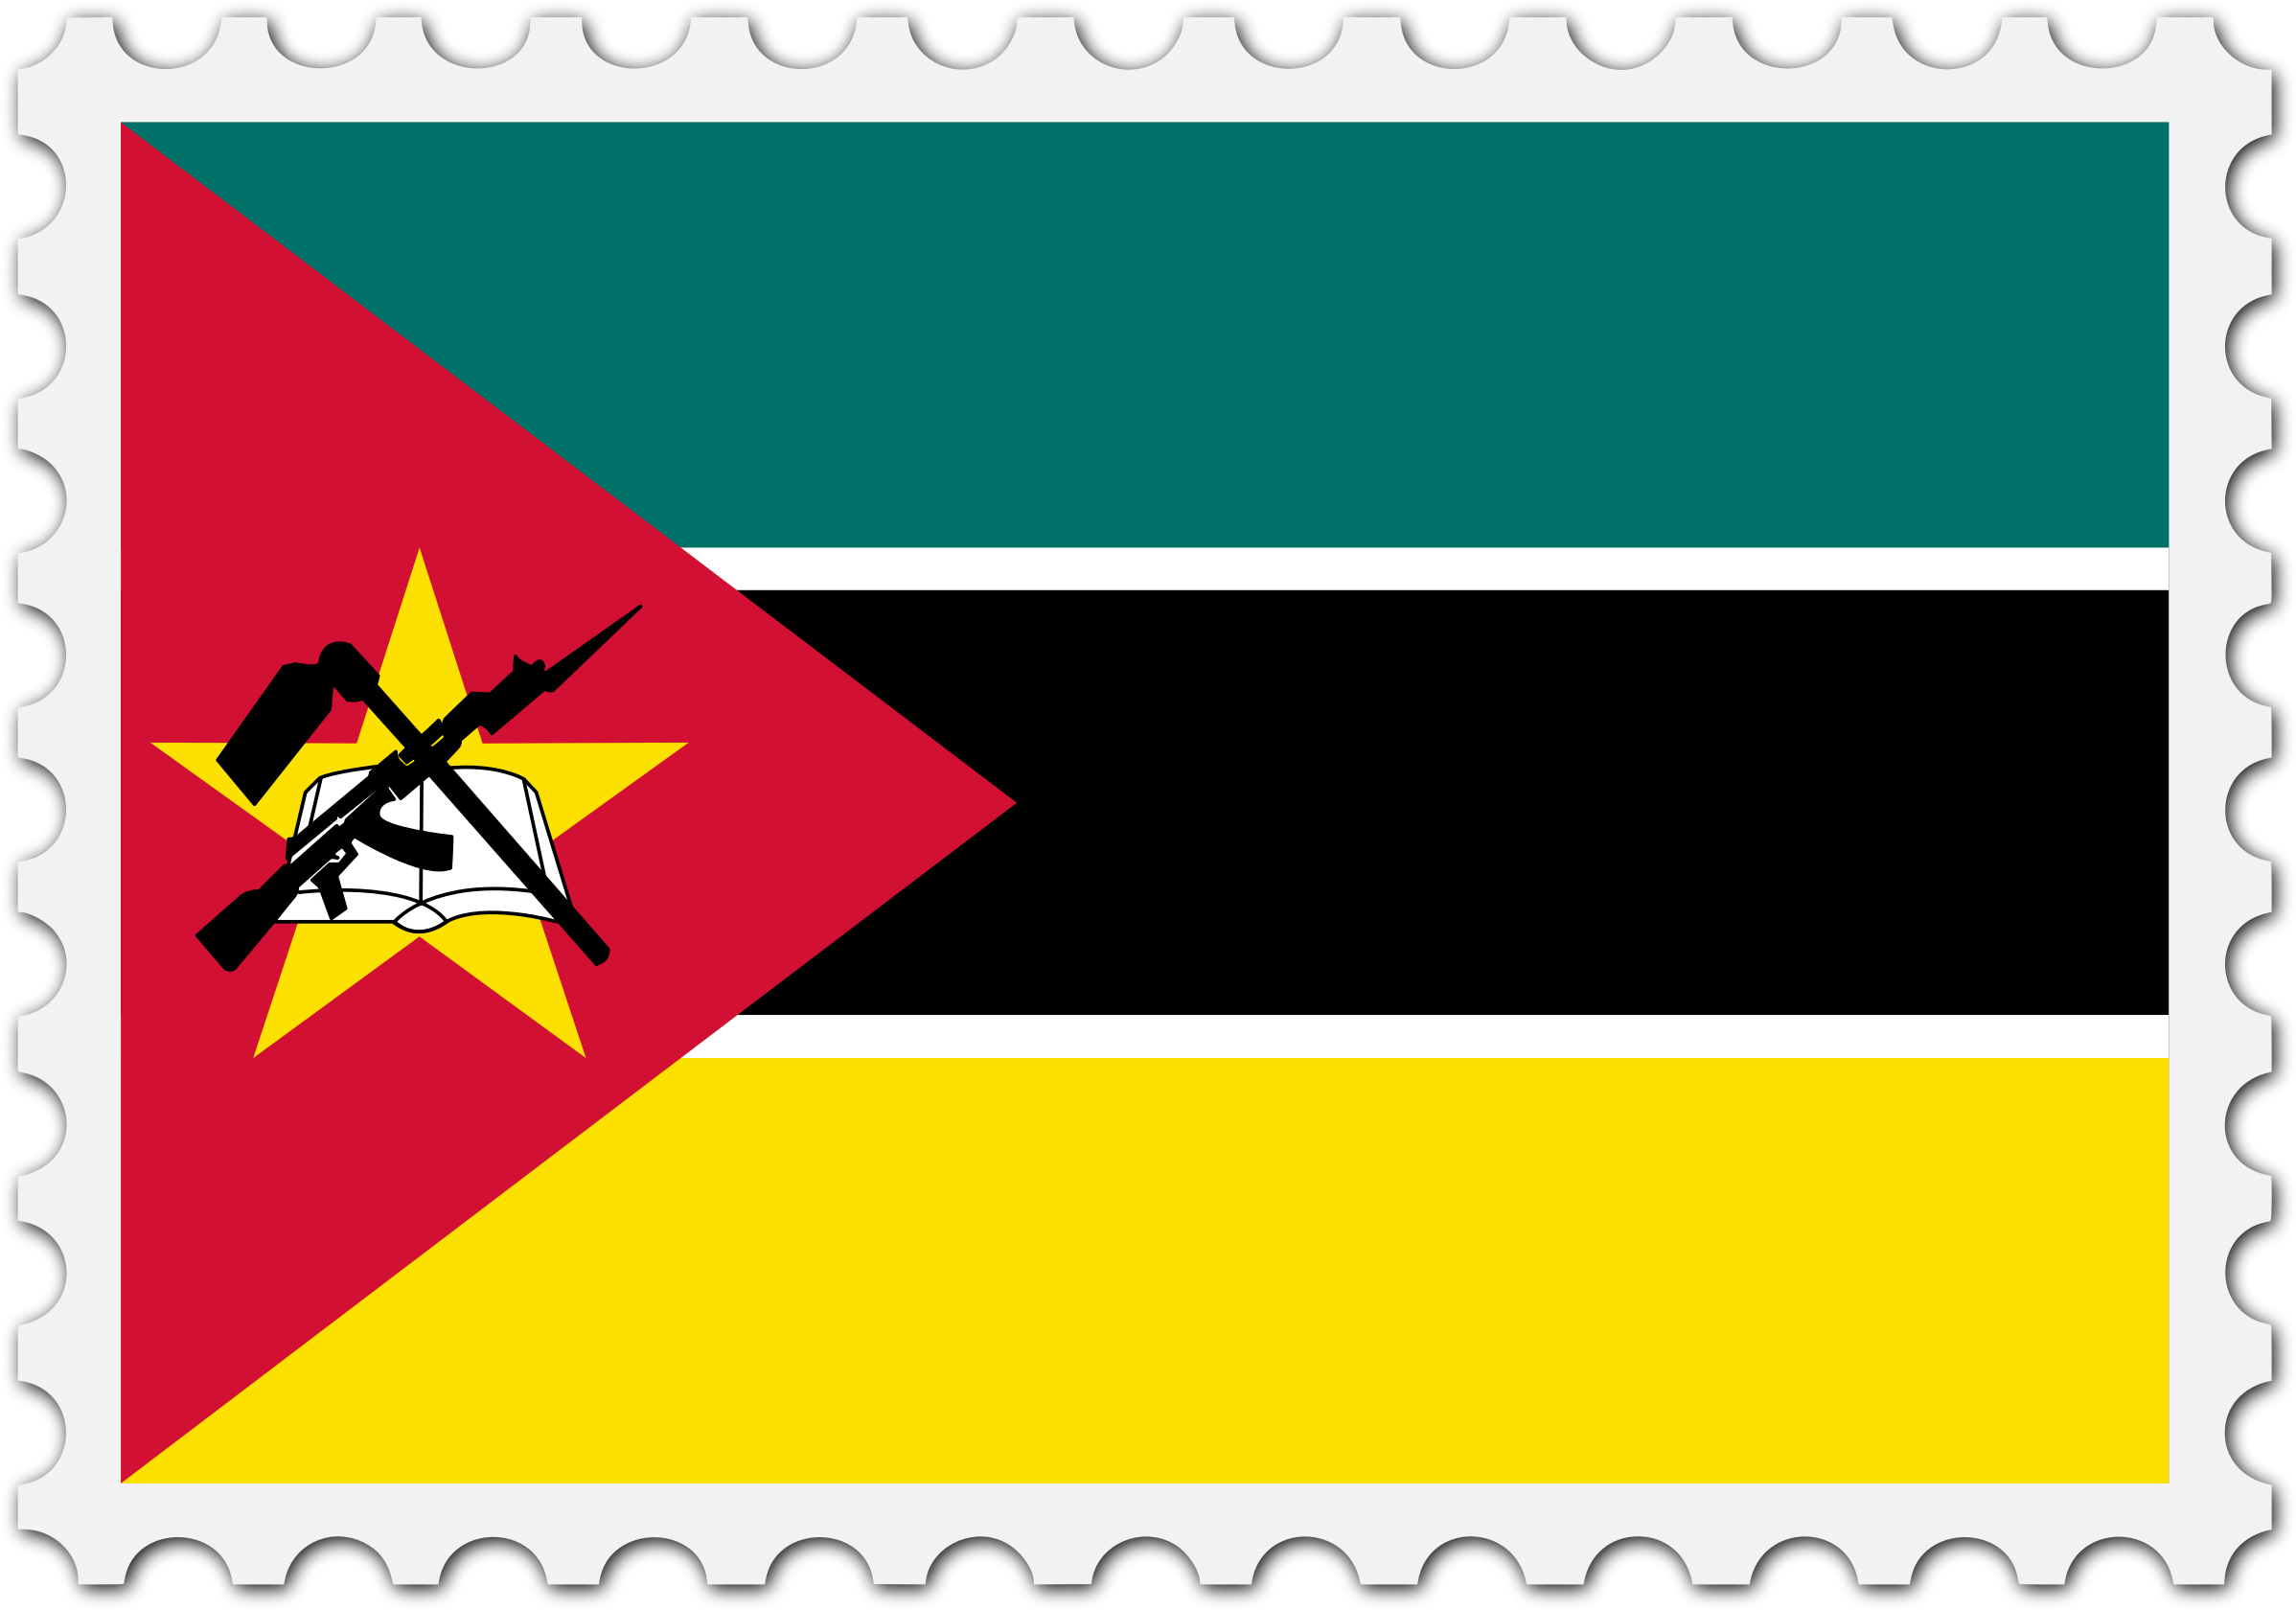 Mozambique flag stamp by Firkin